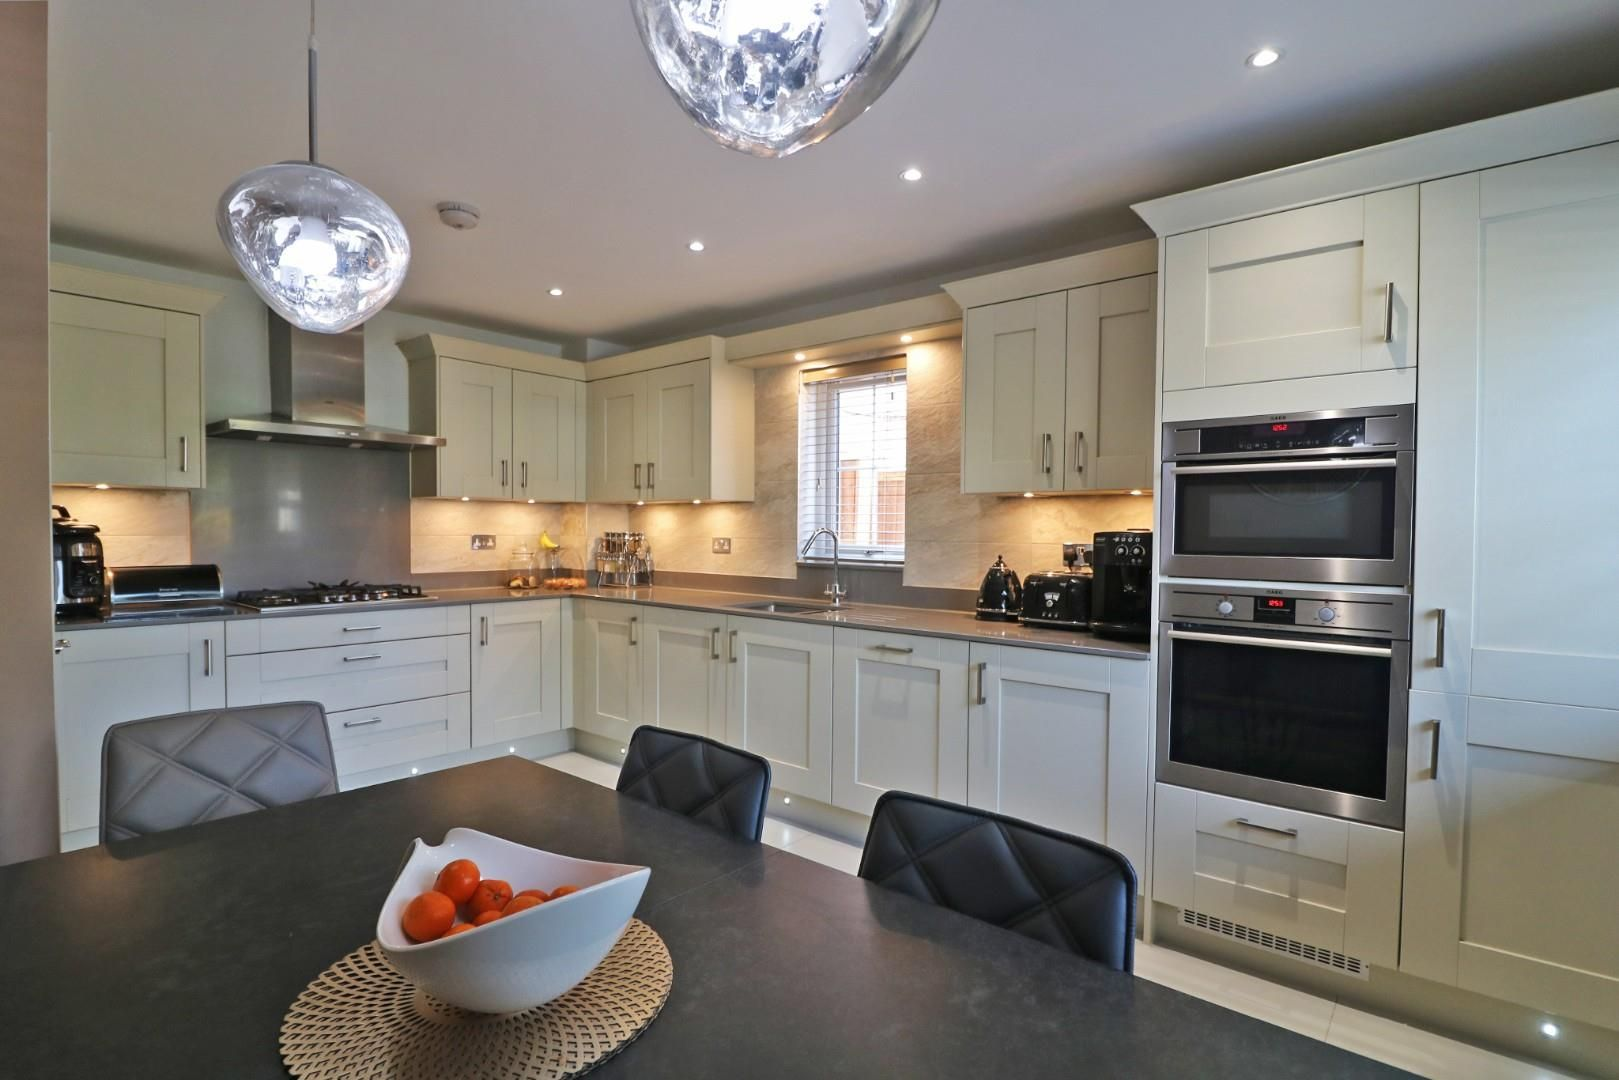 4 bed semi-detached to rent in Binfield  - Property Image 3